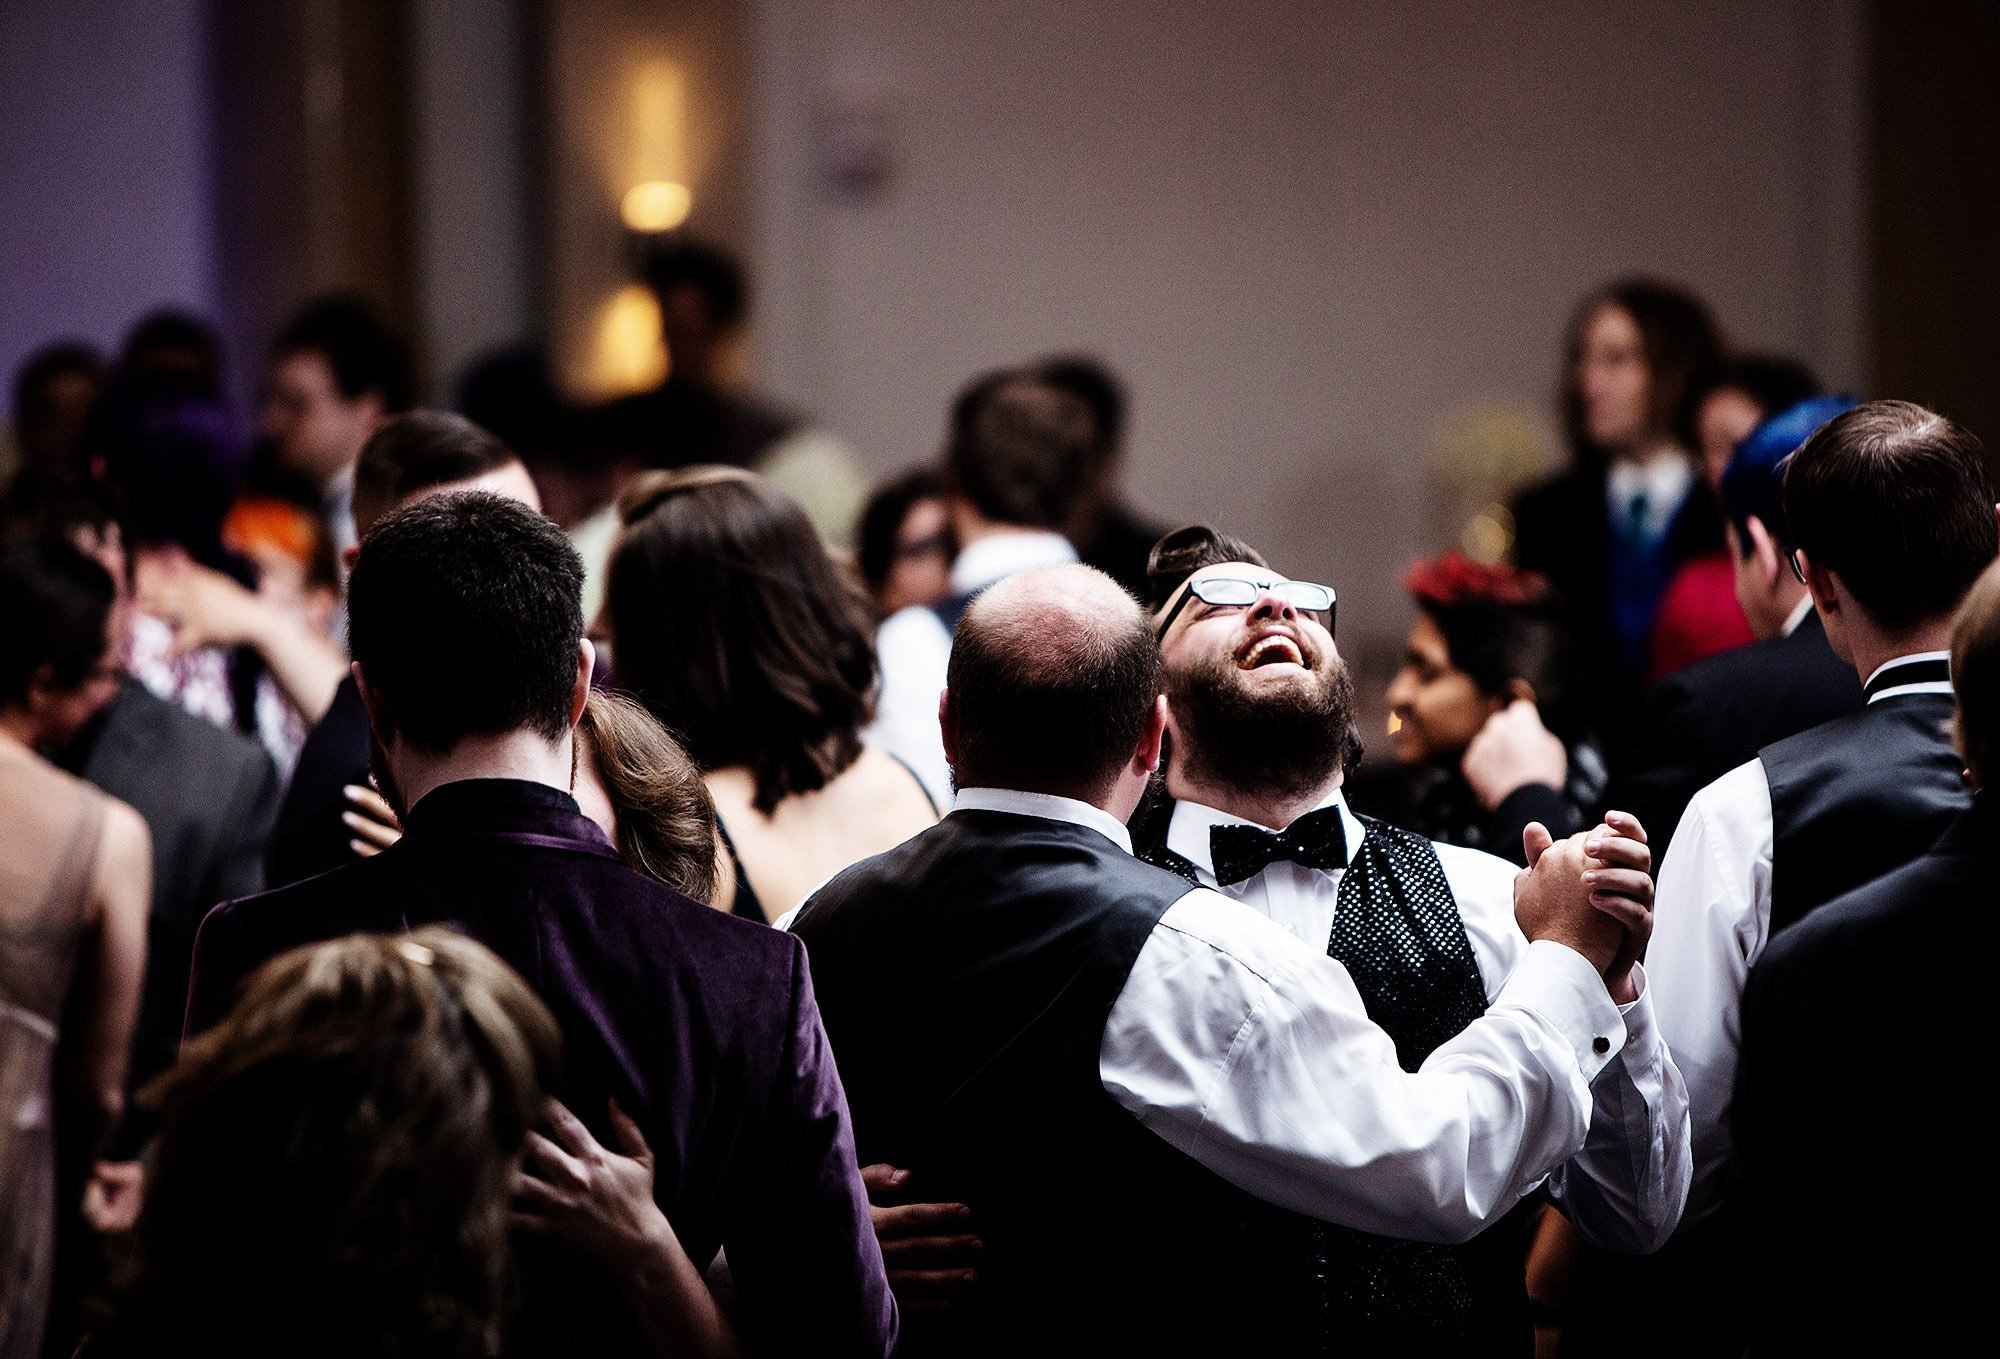 Guests dance during the wedding reception at Courtyard Boston Downtown.